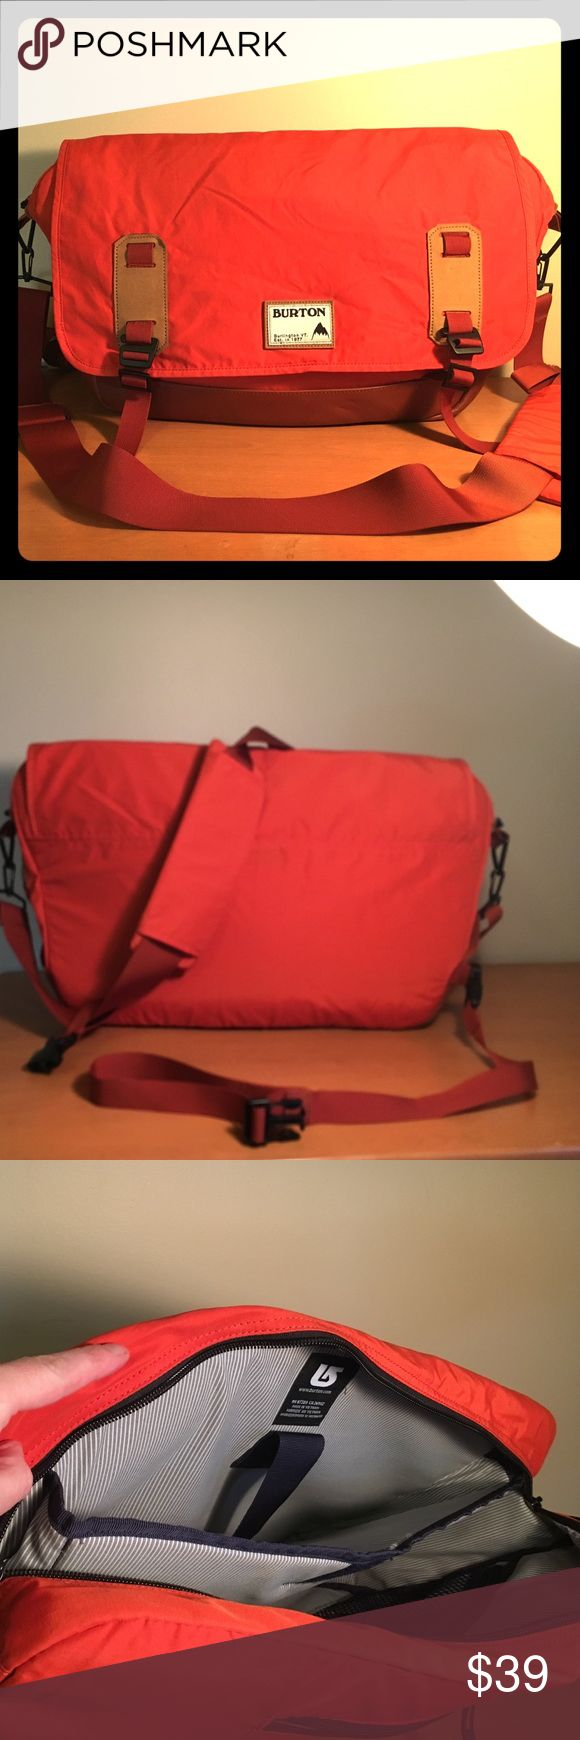 Burton Flint Messenger Bag - Orange Classic Burton messenger bag in rust orange with leather bottom.  Laptop padded pocket inside and multiple other zipped and open pocket on inside and out.  Great condition.  Removable shoulder and messenger straps. Burton Bags Laptop Bags